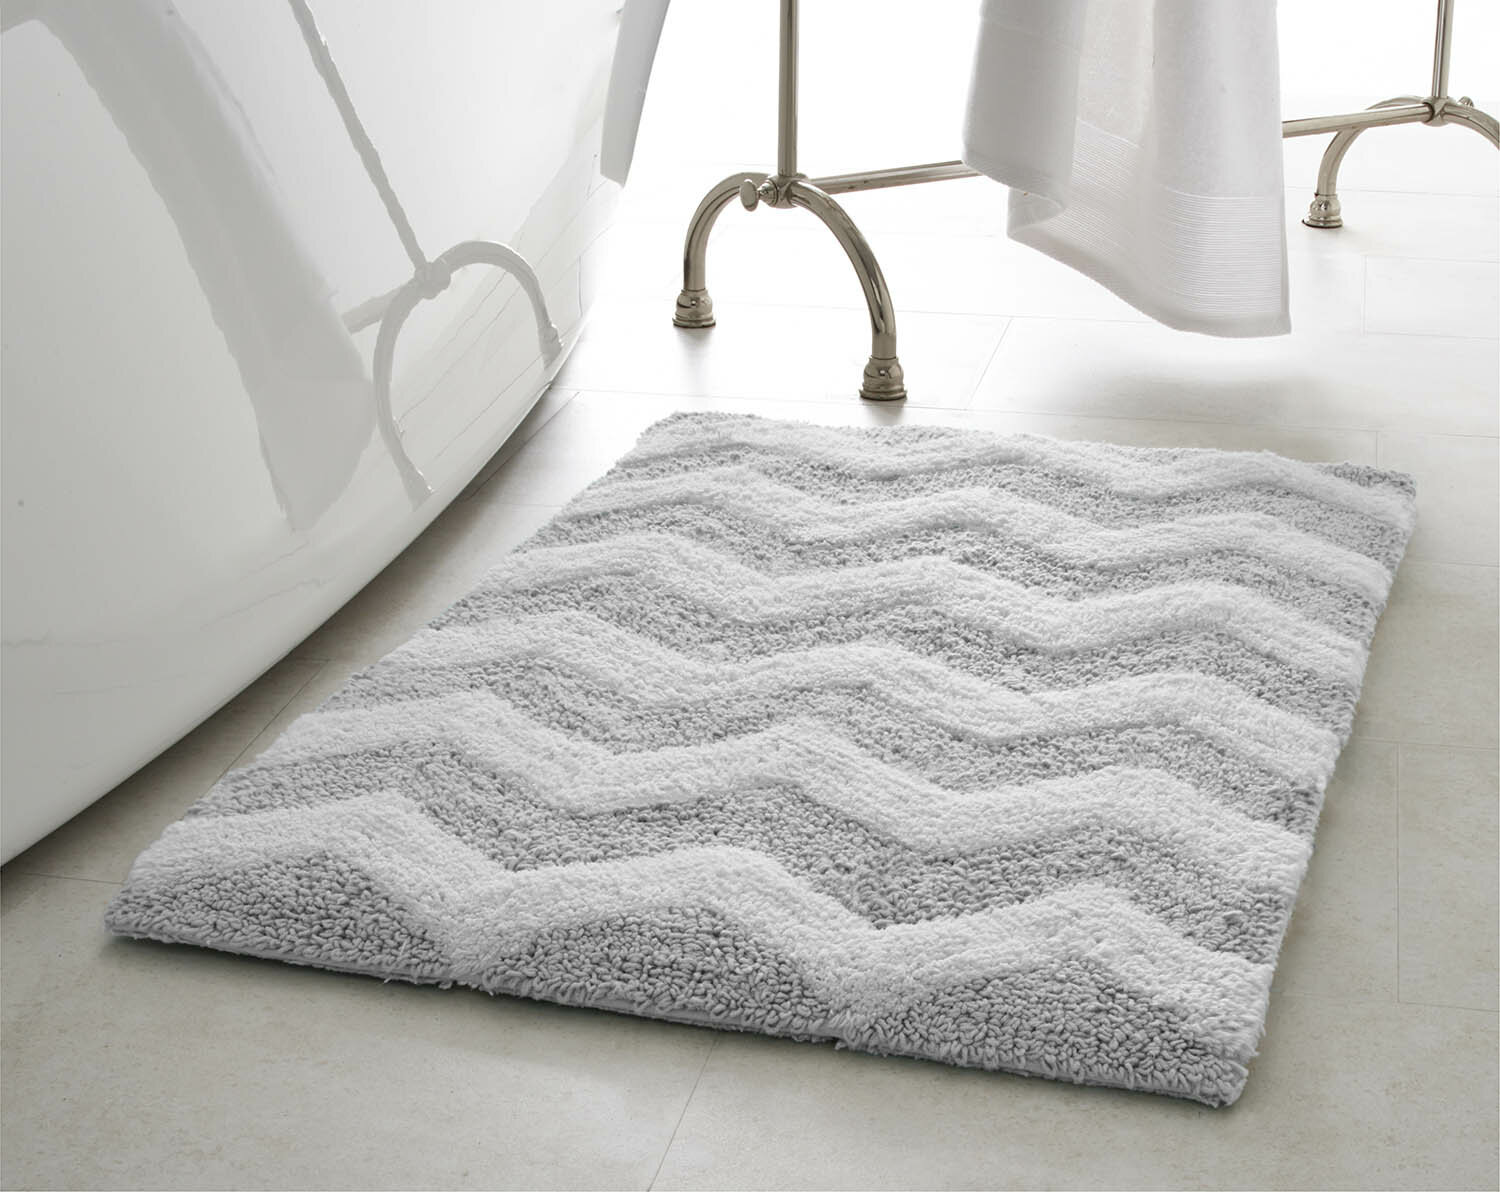 fe33522f7916 Latitude Run Sharla Bath Mat   Reviews